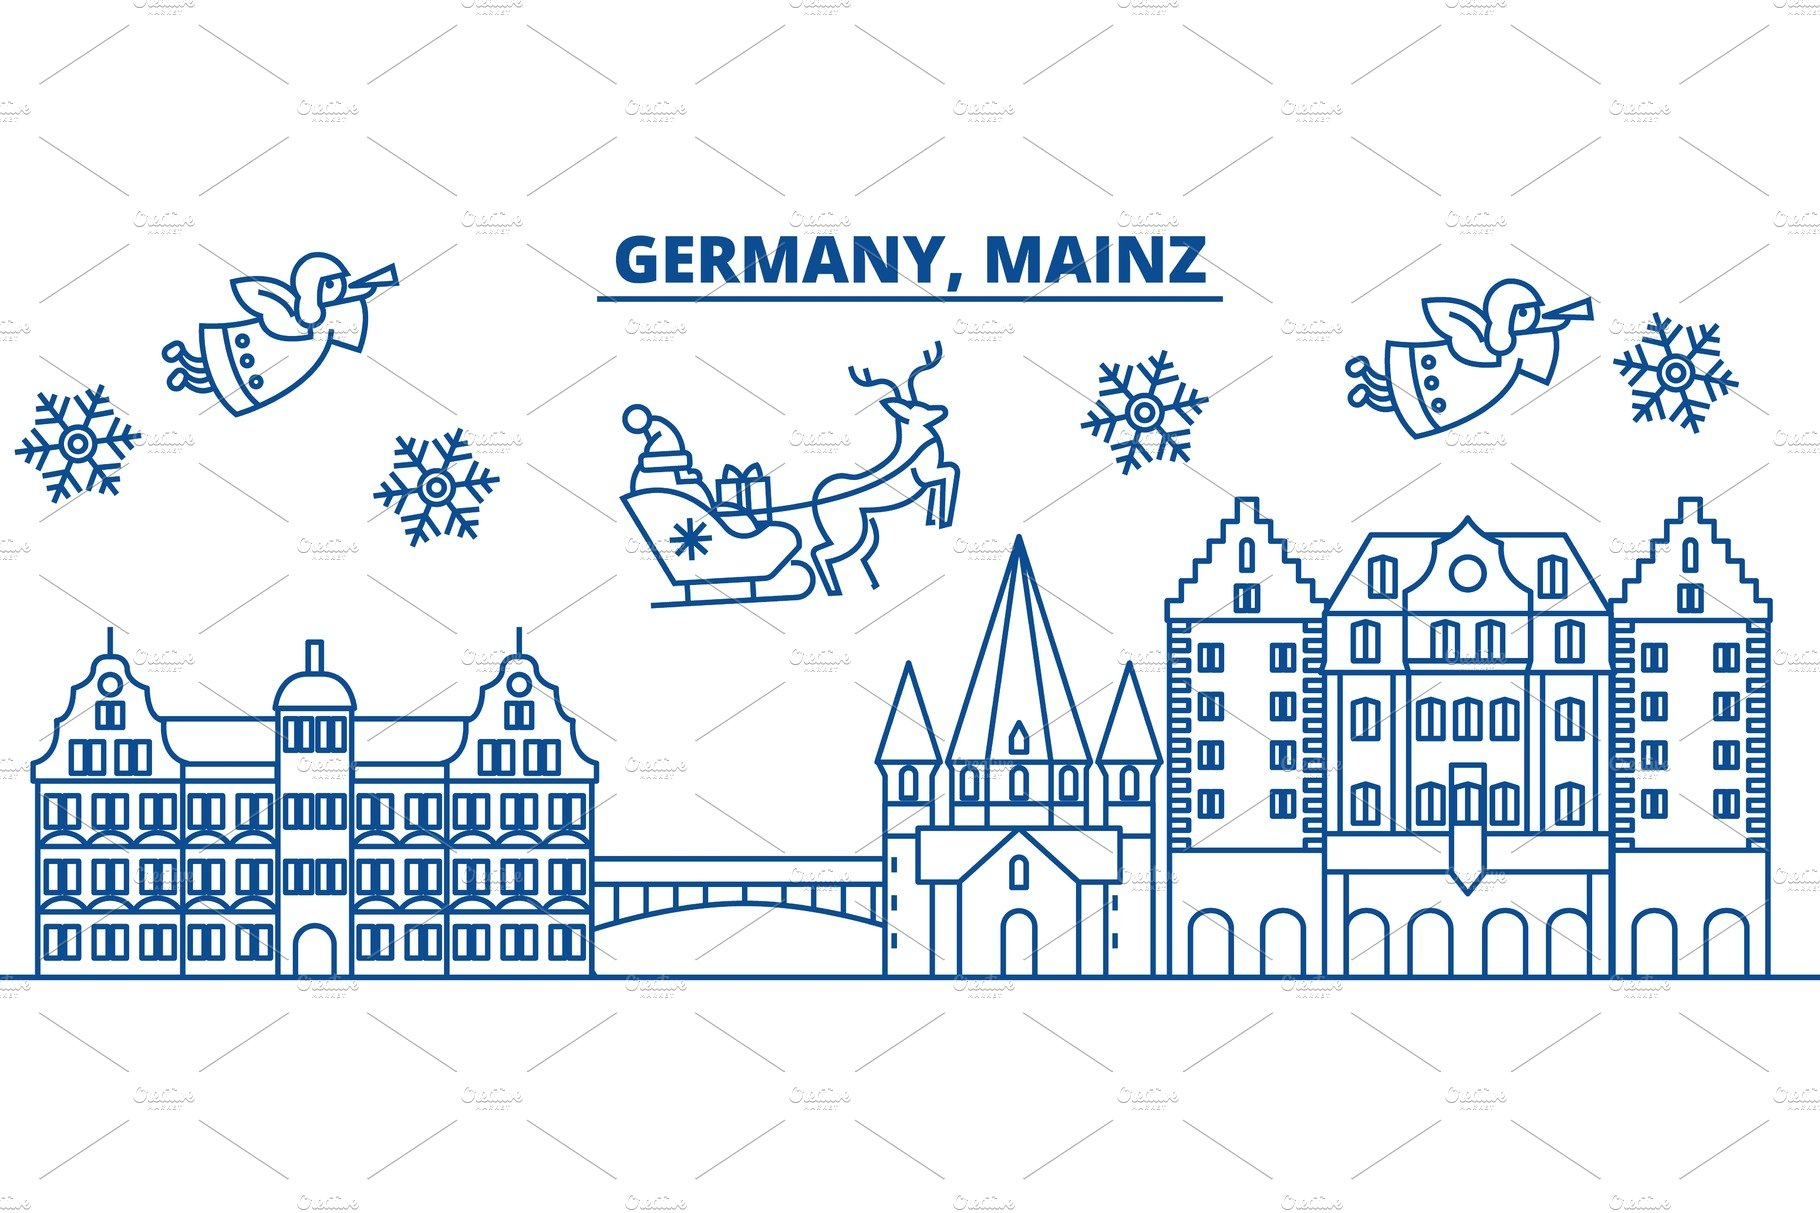 germany mainz winter city skyline merry christmas happy new year decorated banner with